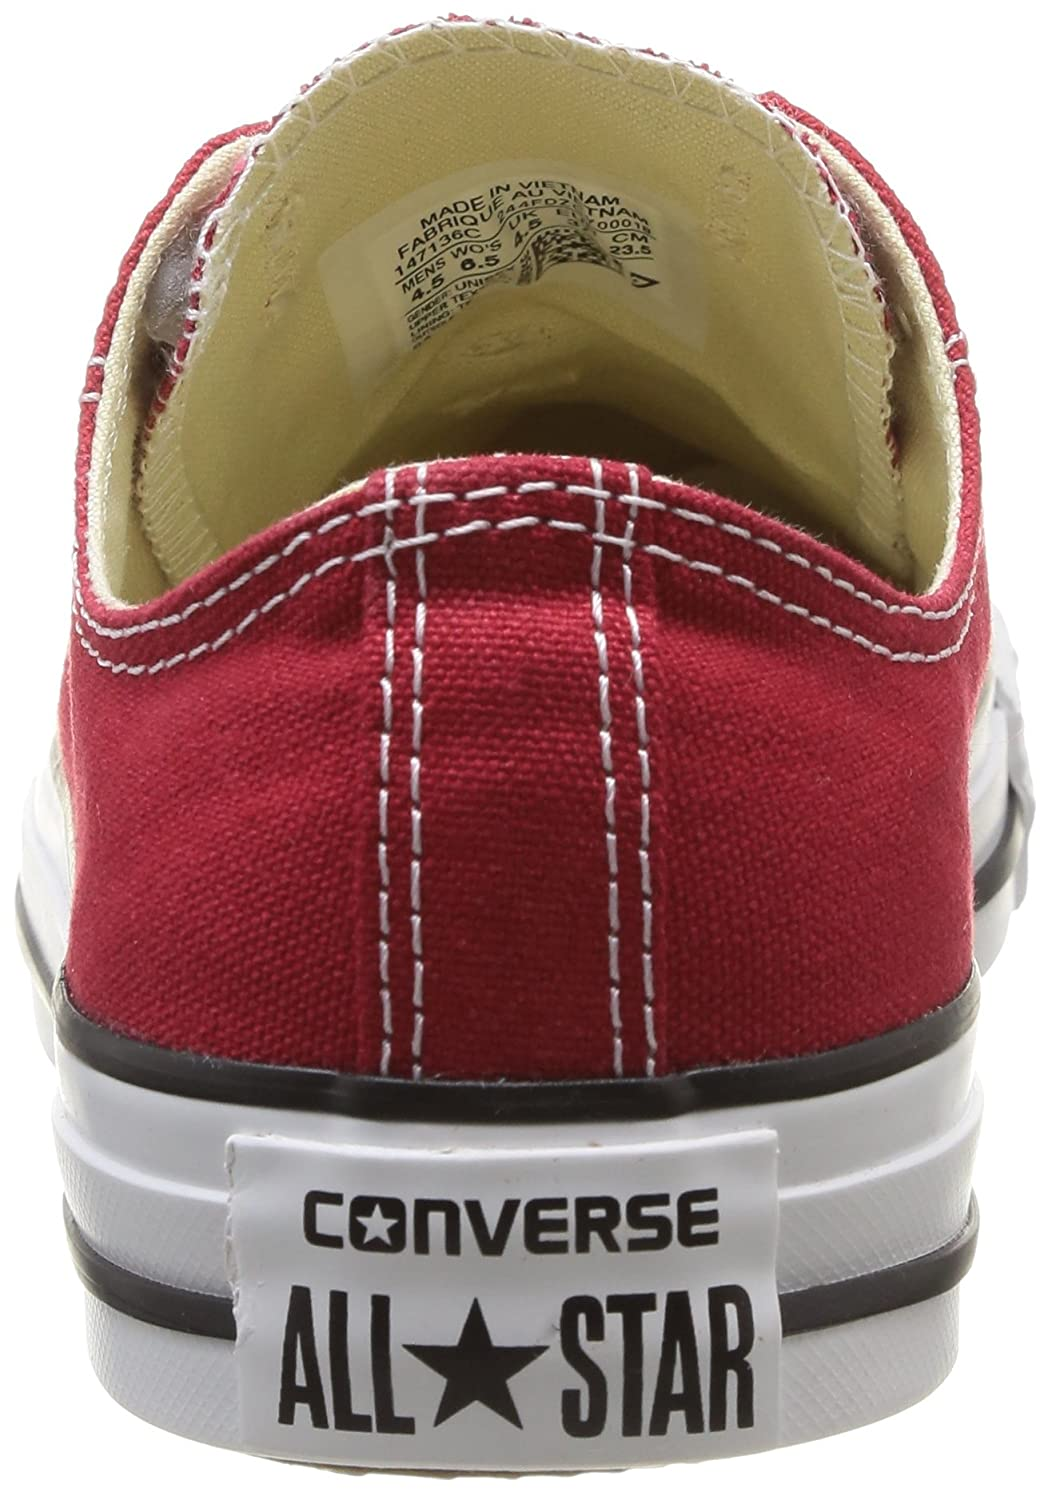 Chuck Taylor All Star, Baskets Hautes Mixte Adulte, Rose (Sunblush 623), 36.5 EUConverse